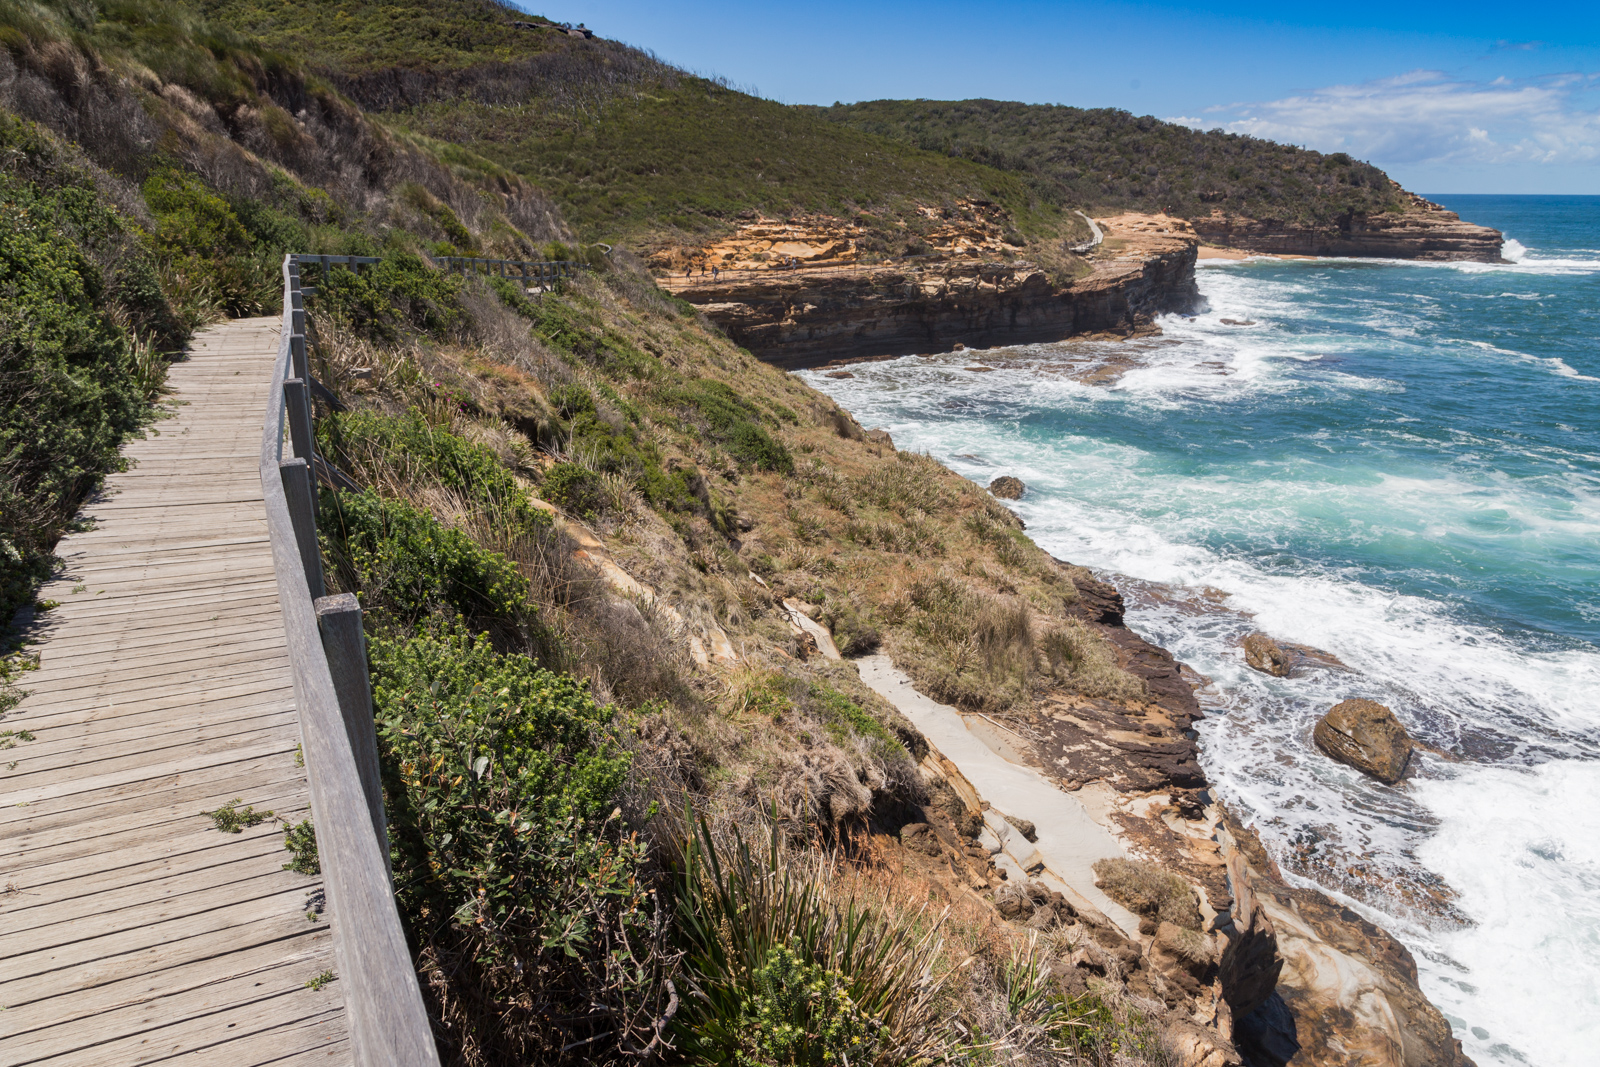 mg 6726 lr Guide to Bouddi National Park